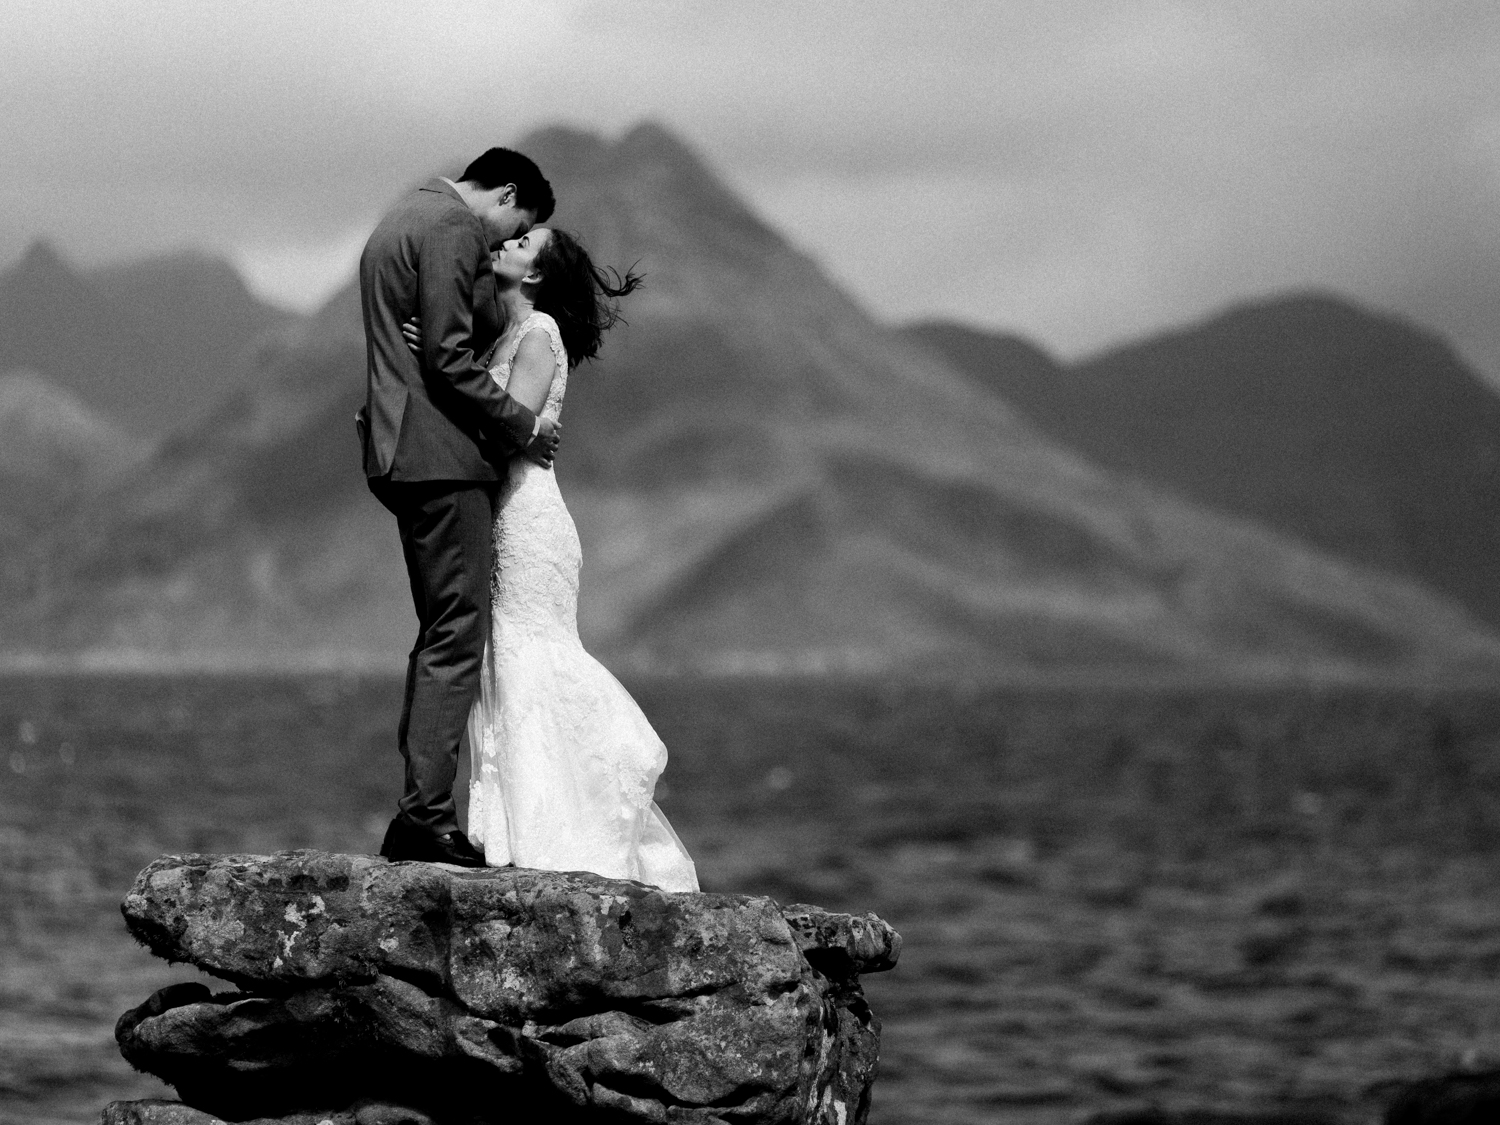 capyture-wedding-photographer-destination-elopement-isle-skye-362